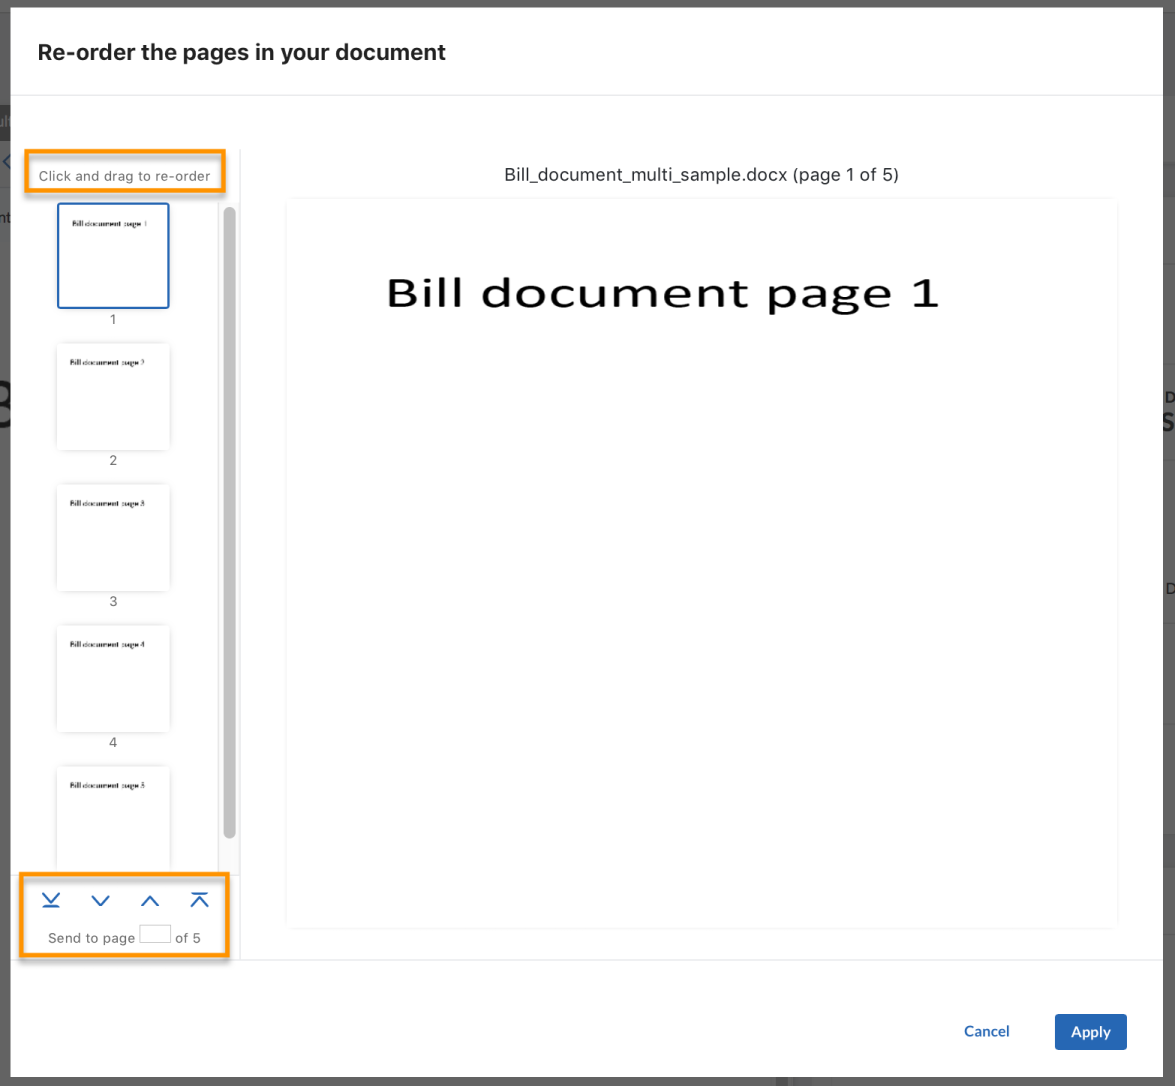 reorder bill document page details